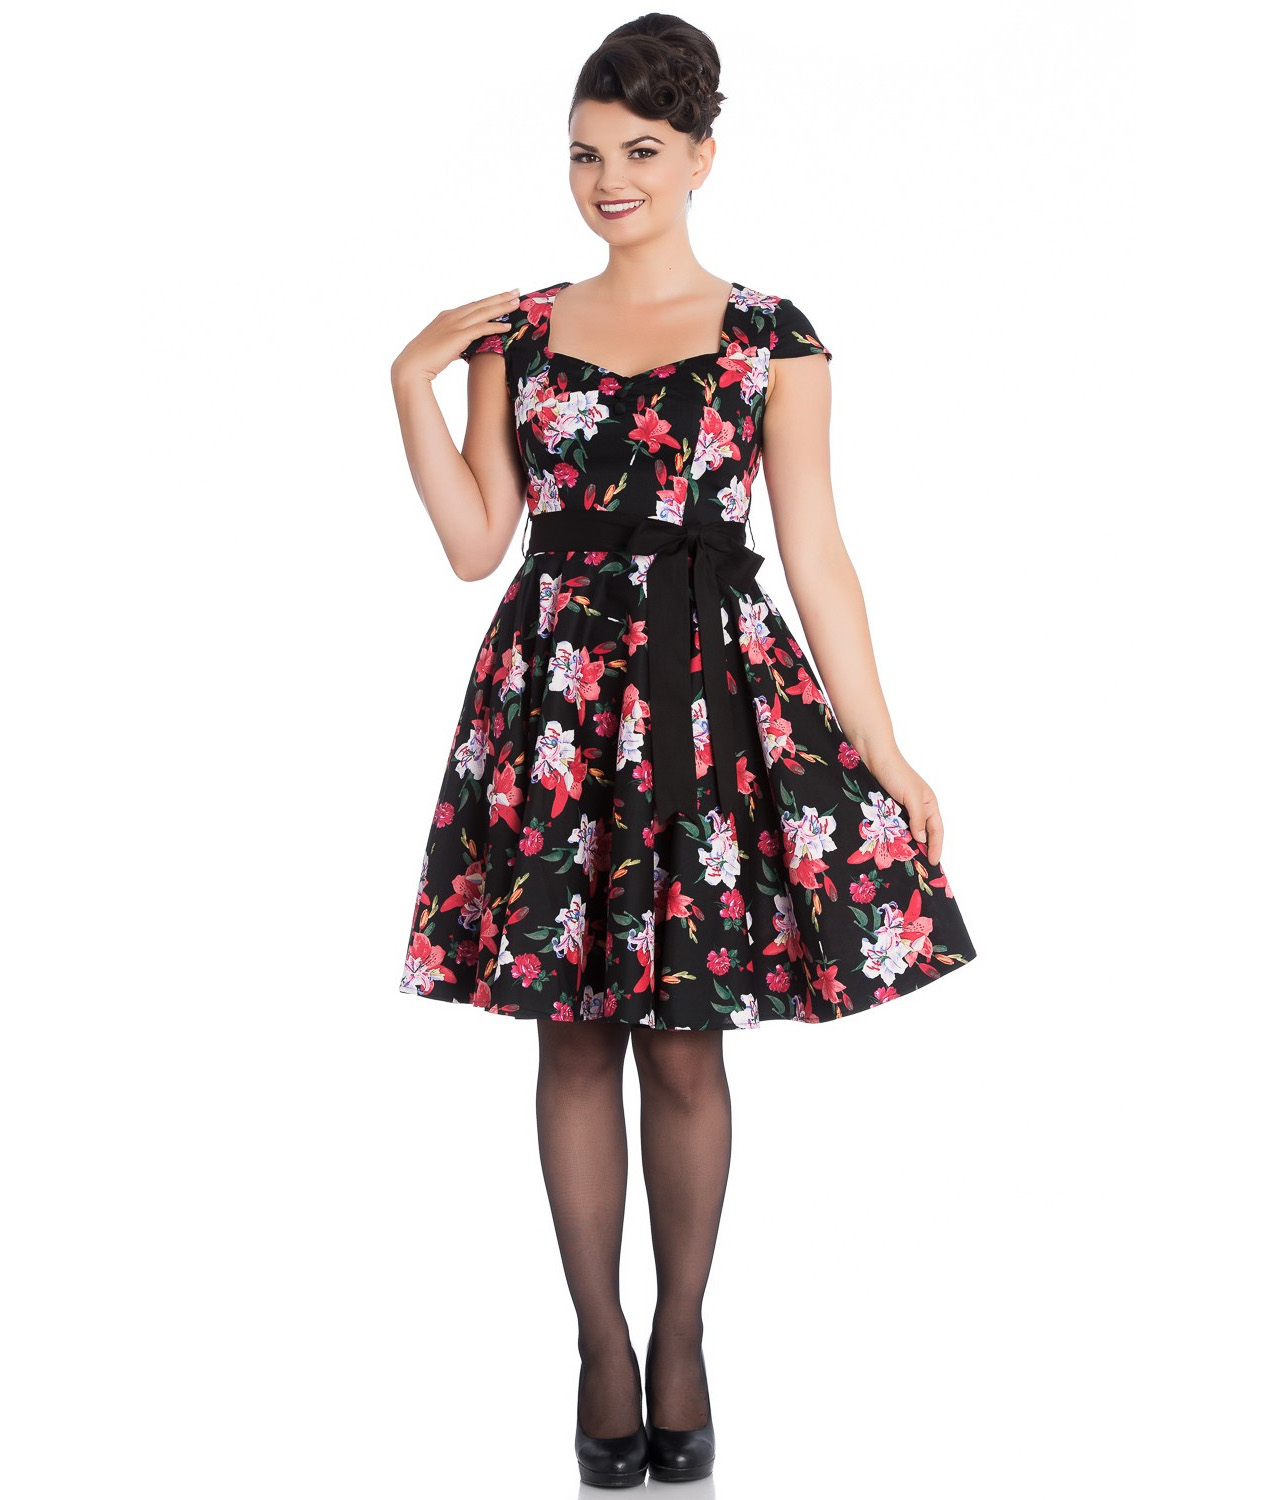 Hell-Bunny-Pin-Up-Mid-Length-50s-Dress-LILIANA-Lilly-Black-Flowers-Bow-All-Sizes thumbnail 3